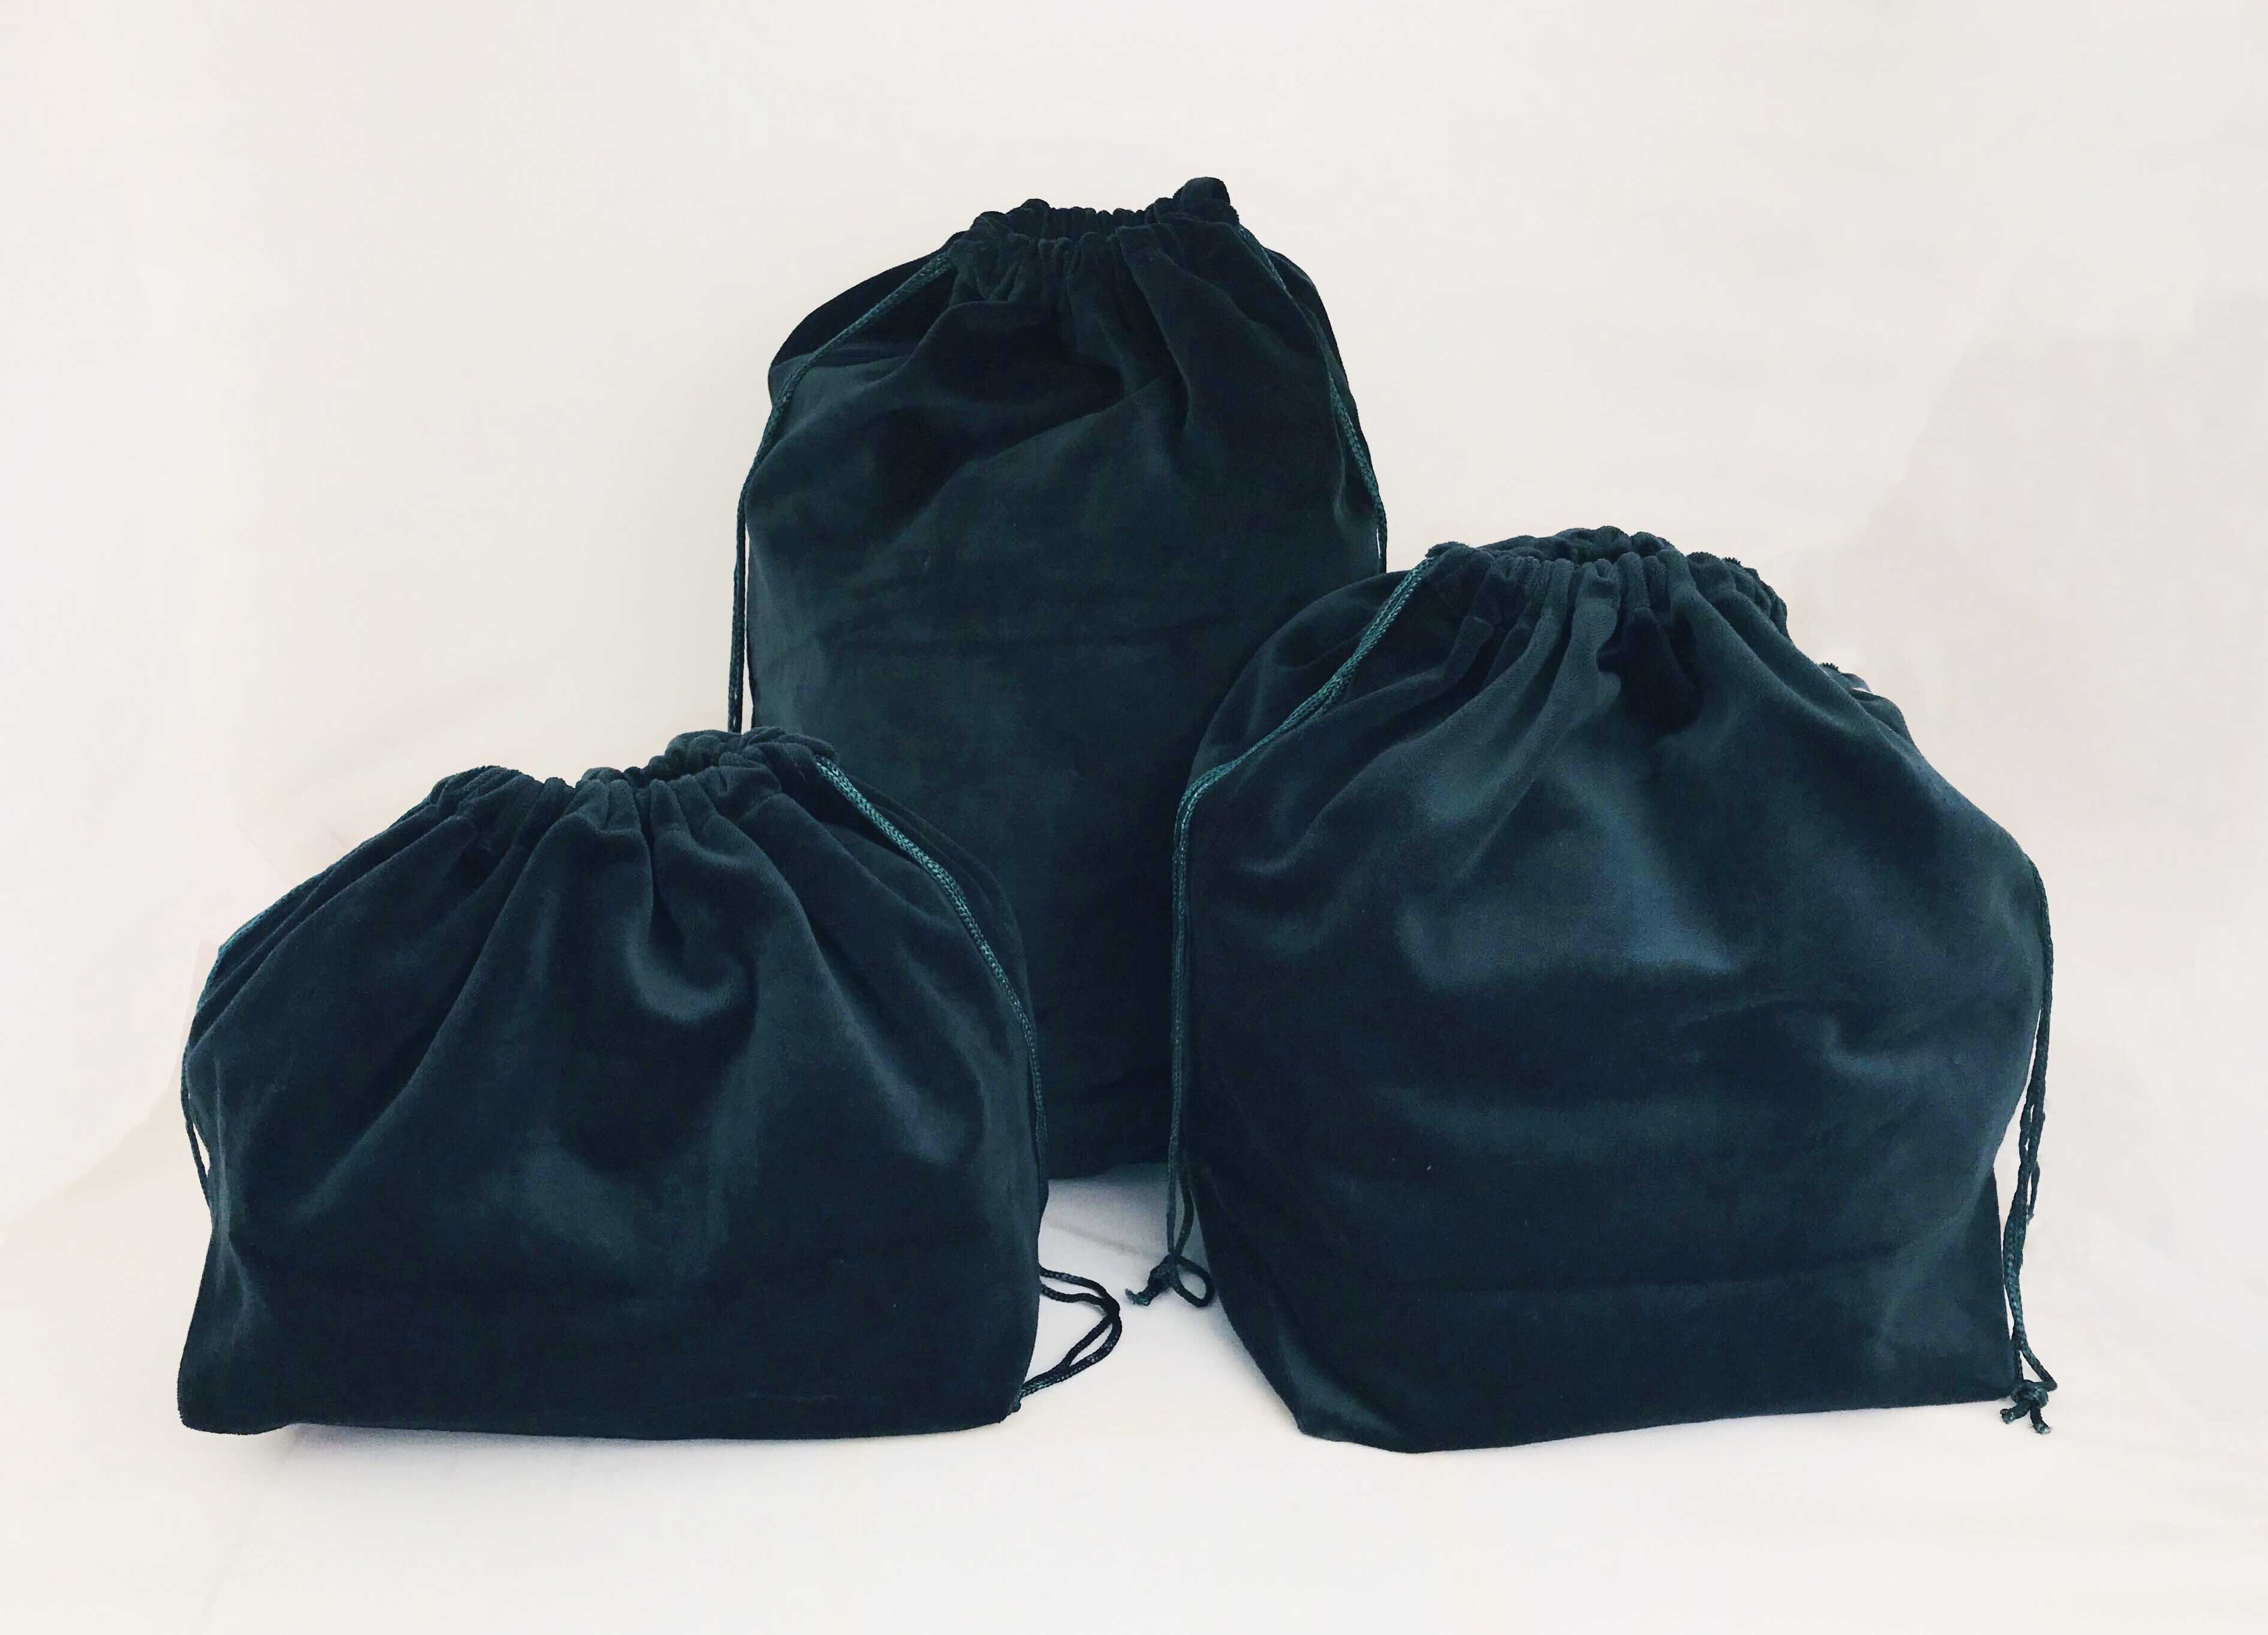 10 x Gusseted Urn Bags - Green (No Embroidery)